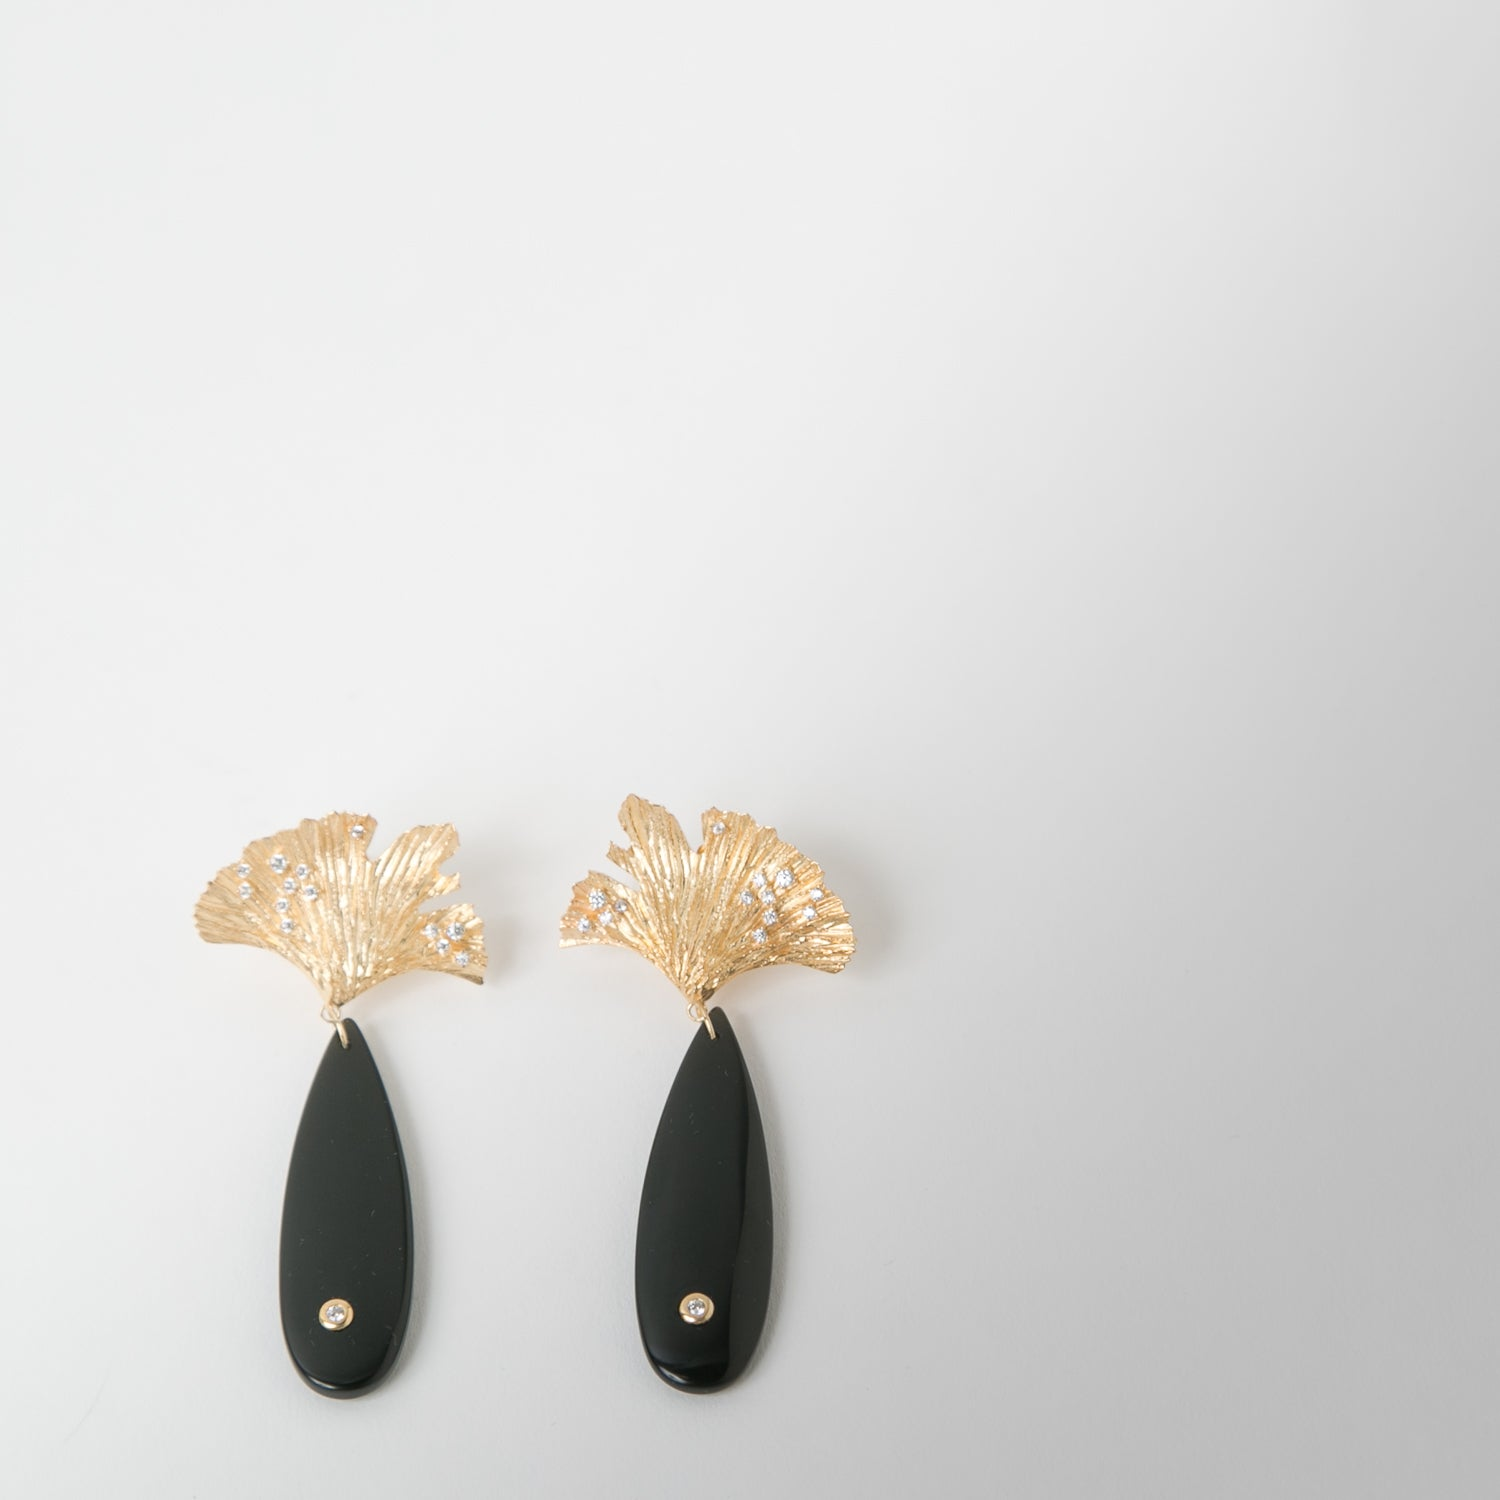 gold leaf attached to carved black obsidian finished with cubic zirconia by Apples & Figs